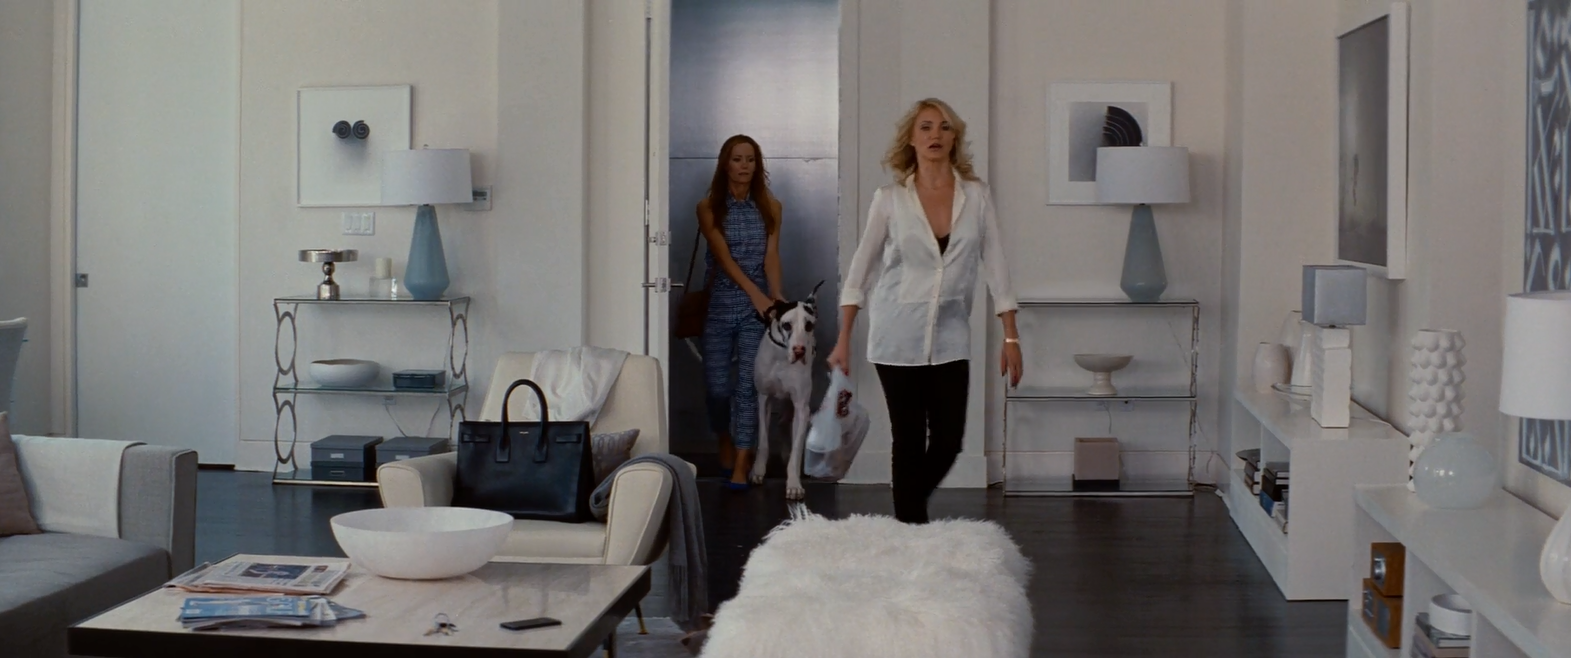 The Other Woman   Apartment (movies)